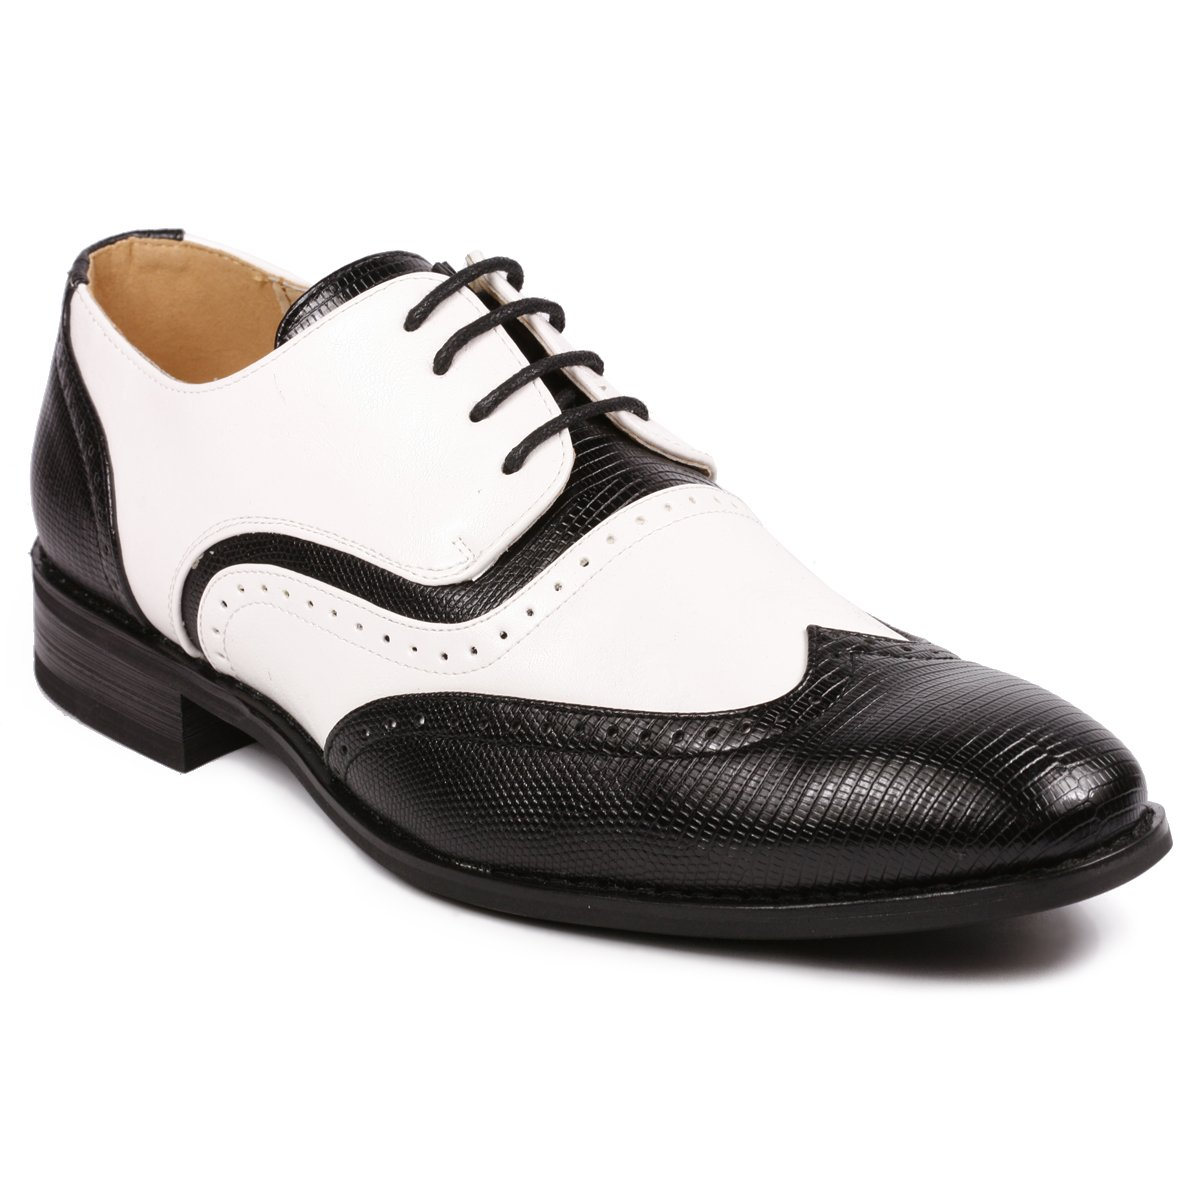 1920s Style Mens Shoes | Peaky Blinders Boots Metrocharm MC113 Mens Wing Tip Perforated Lace Up Oxford Dress Shoes $39.99 AT vintagedancer.com